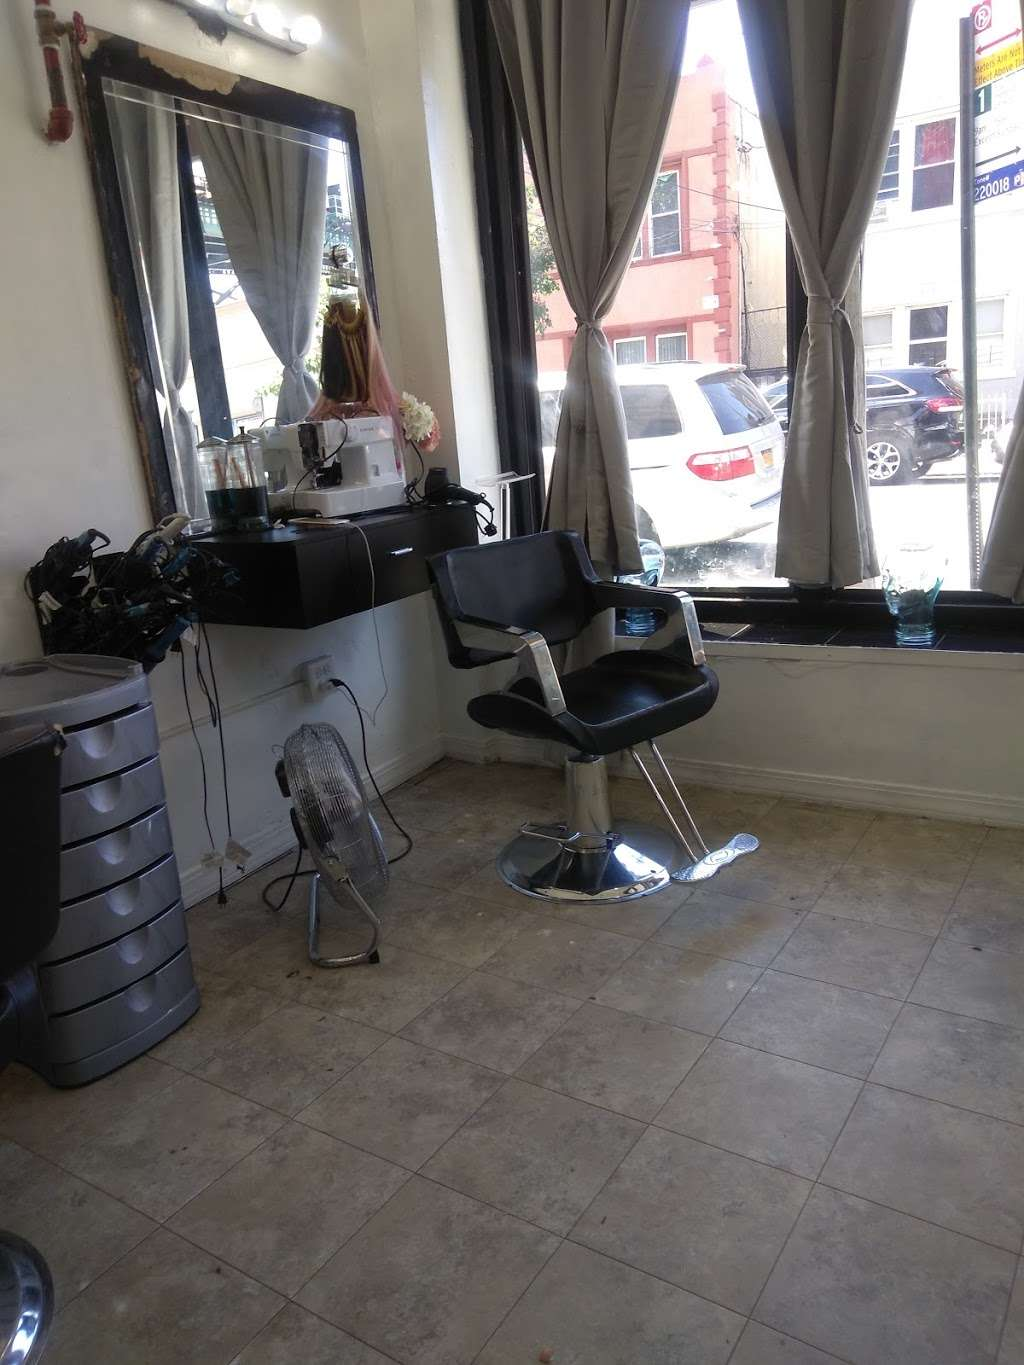 Luxury Hair Extensions and Salon - hair care  | Photo 4 of 10 | Address: 1170 Colgate Ave, Bronx, NY 10472, USA | Phone: (347) 879-8122